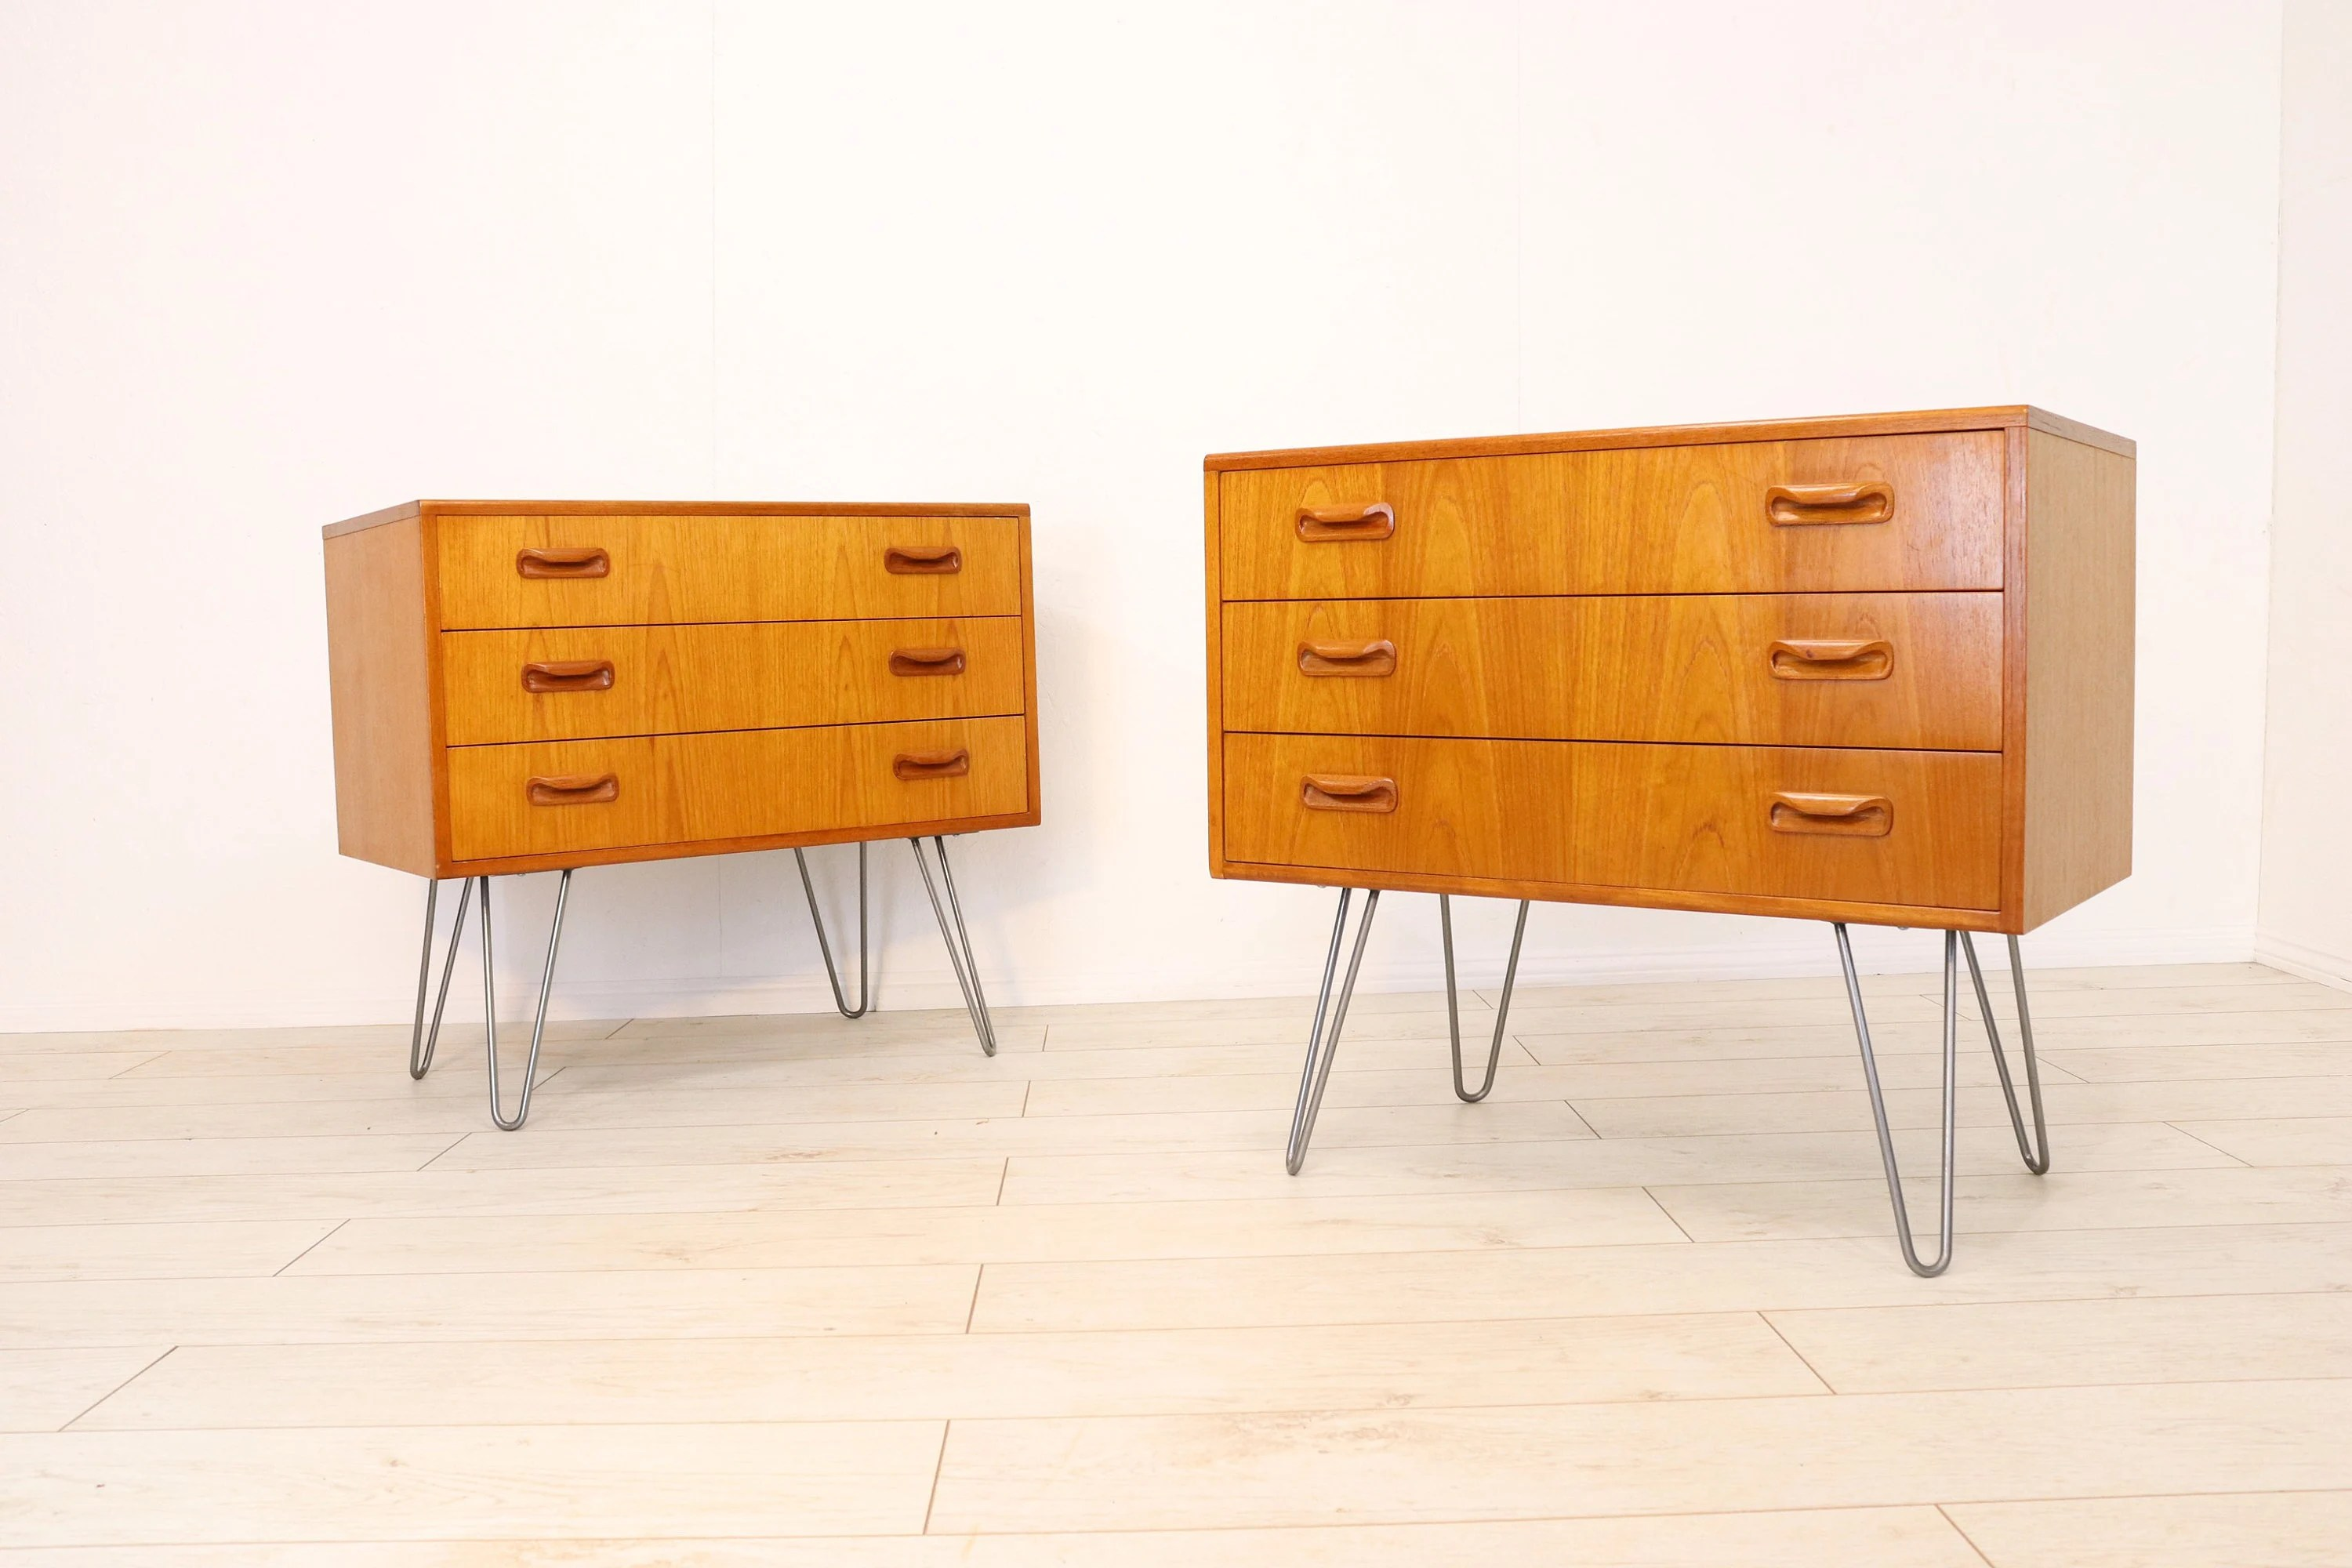 Mid Century Teak Matching Set Of 2 Retro G Plan Teak Chest Of Drawers Bedside Table Units On 12 Hairpin Legs Vintage Industrial Sideboard